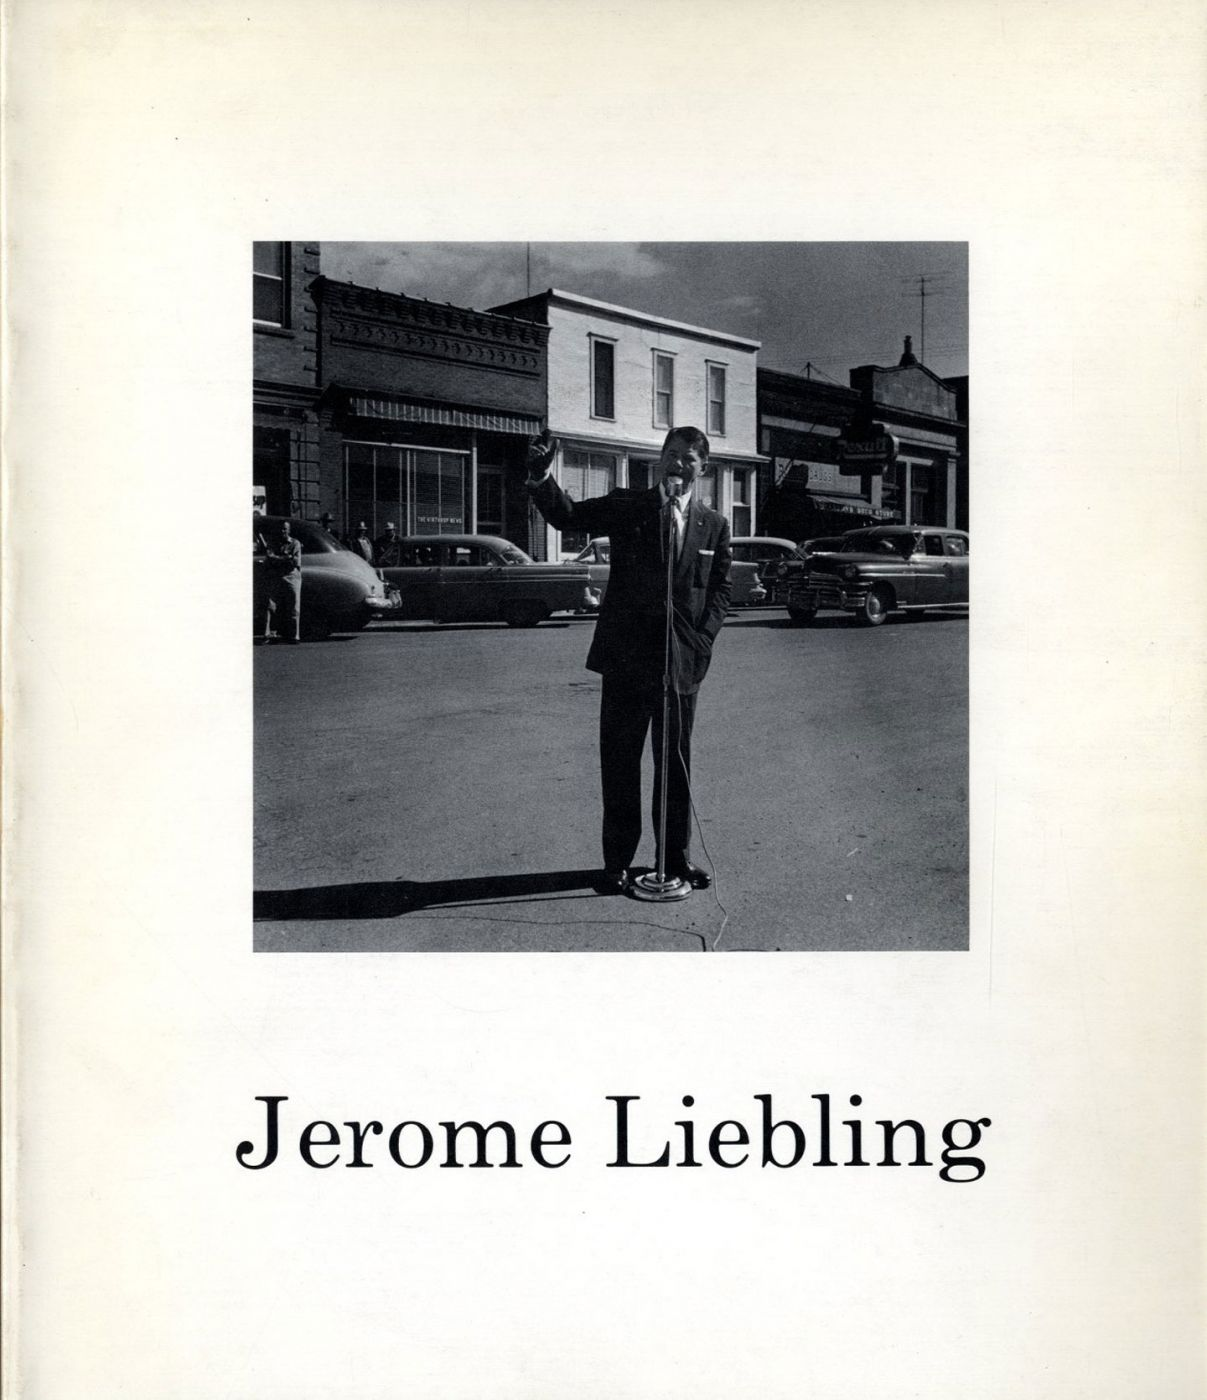 Untitled 15 (The Friends of Photography): Jerome Liebling: Photographs 1947-1977